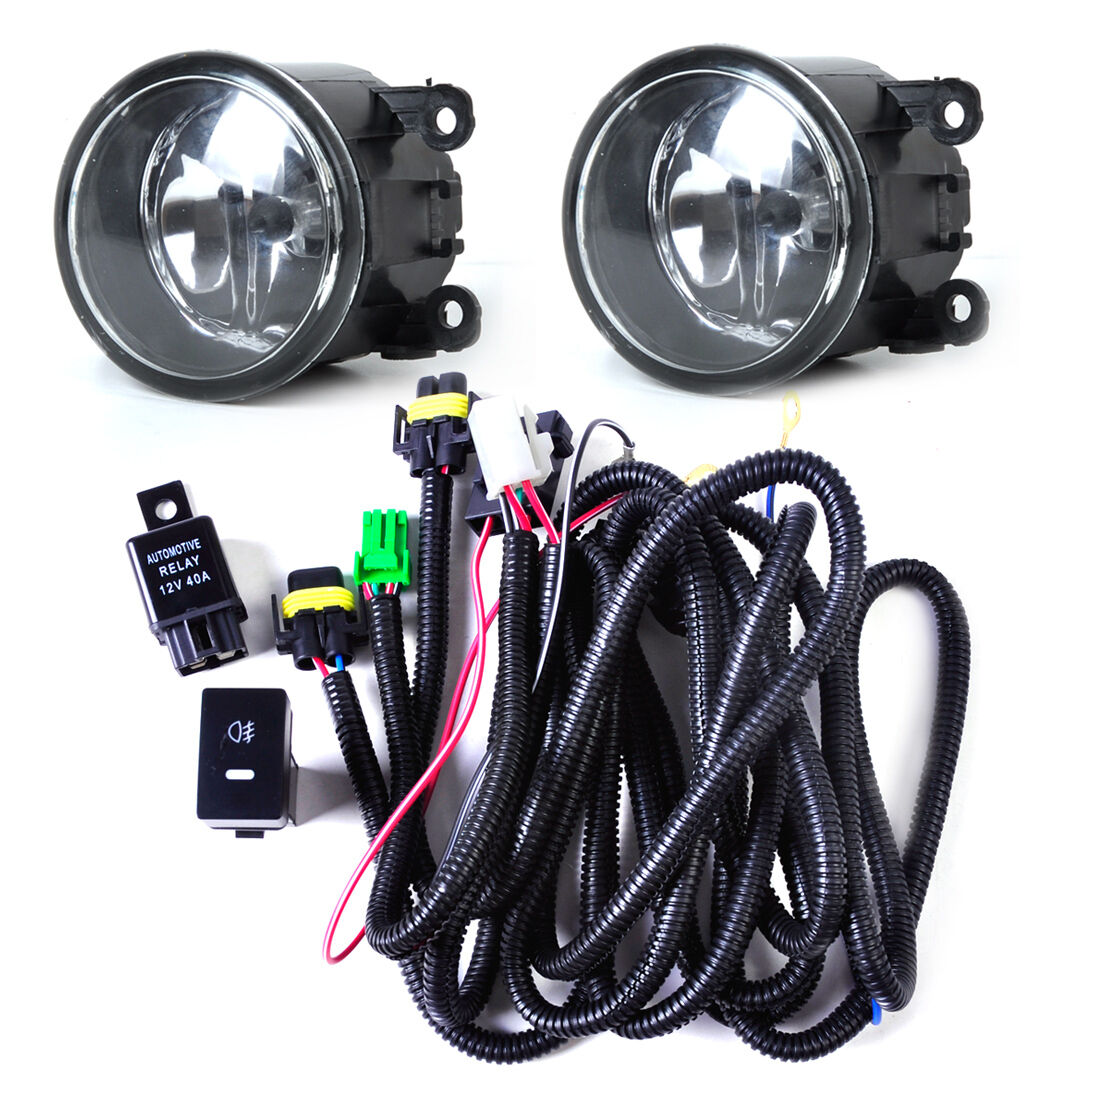 Wiring Harness Sockets Switch 2 H11 Fog Lights for Ford Focus Acura